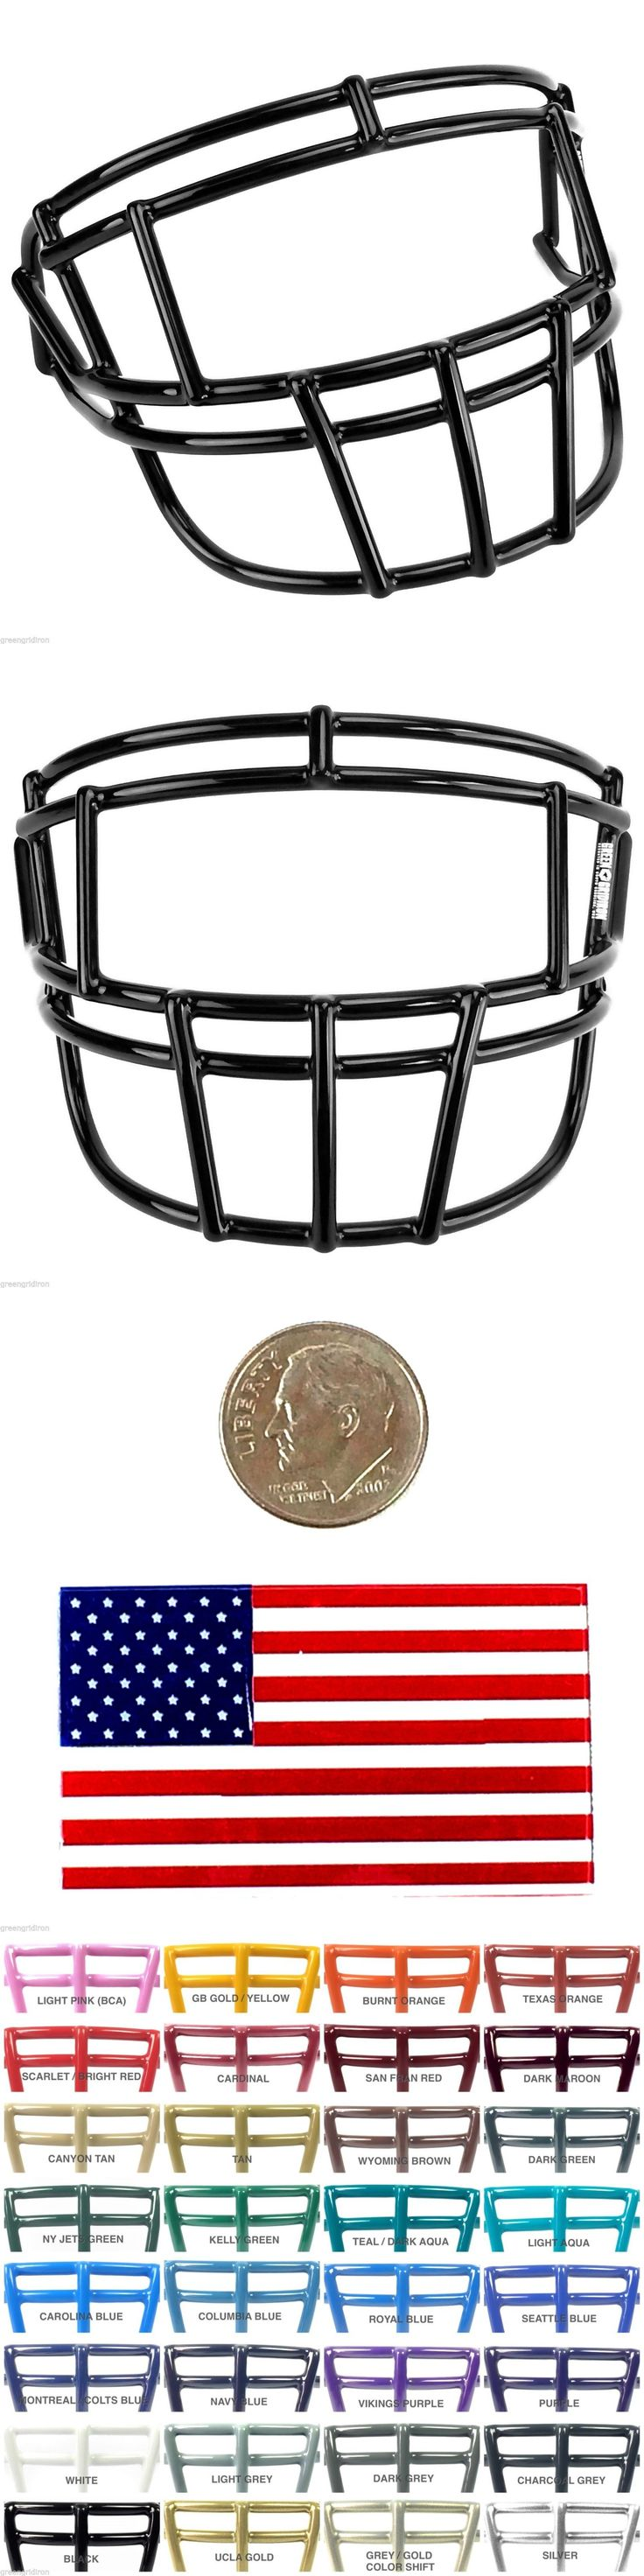 Helmets and Hats 21222: Schutt Super Pro Egop-Ii Football Facemask - 30+ Colors Available -> BUY IT NOW ONLY: $30 on eBay!